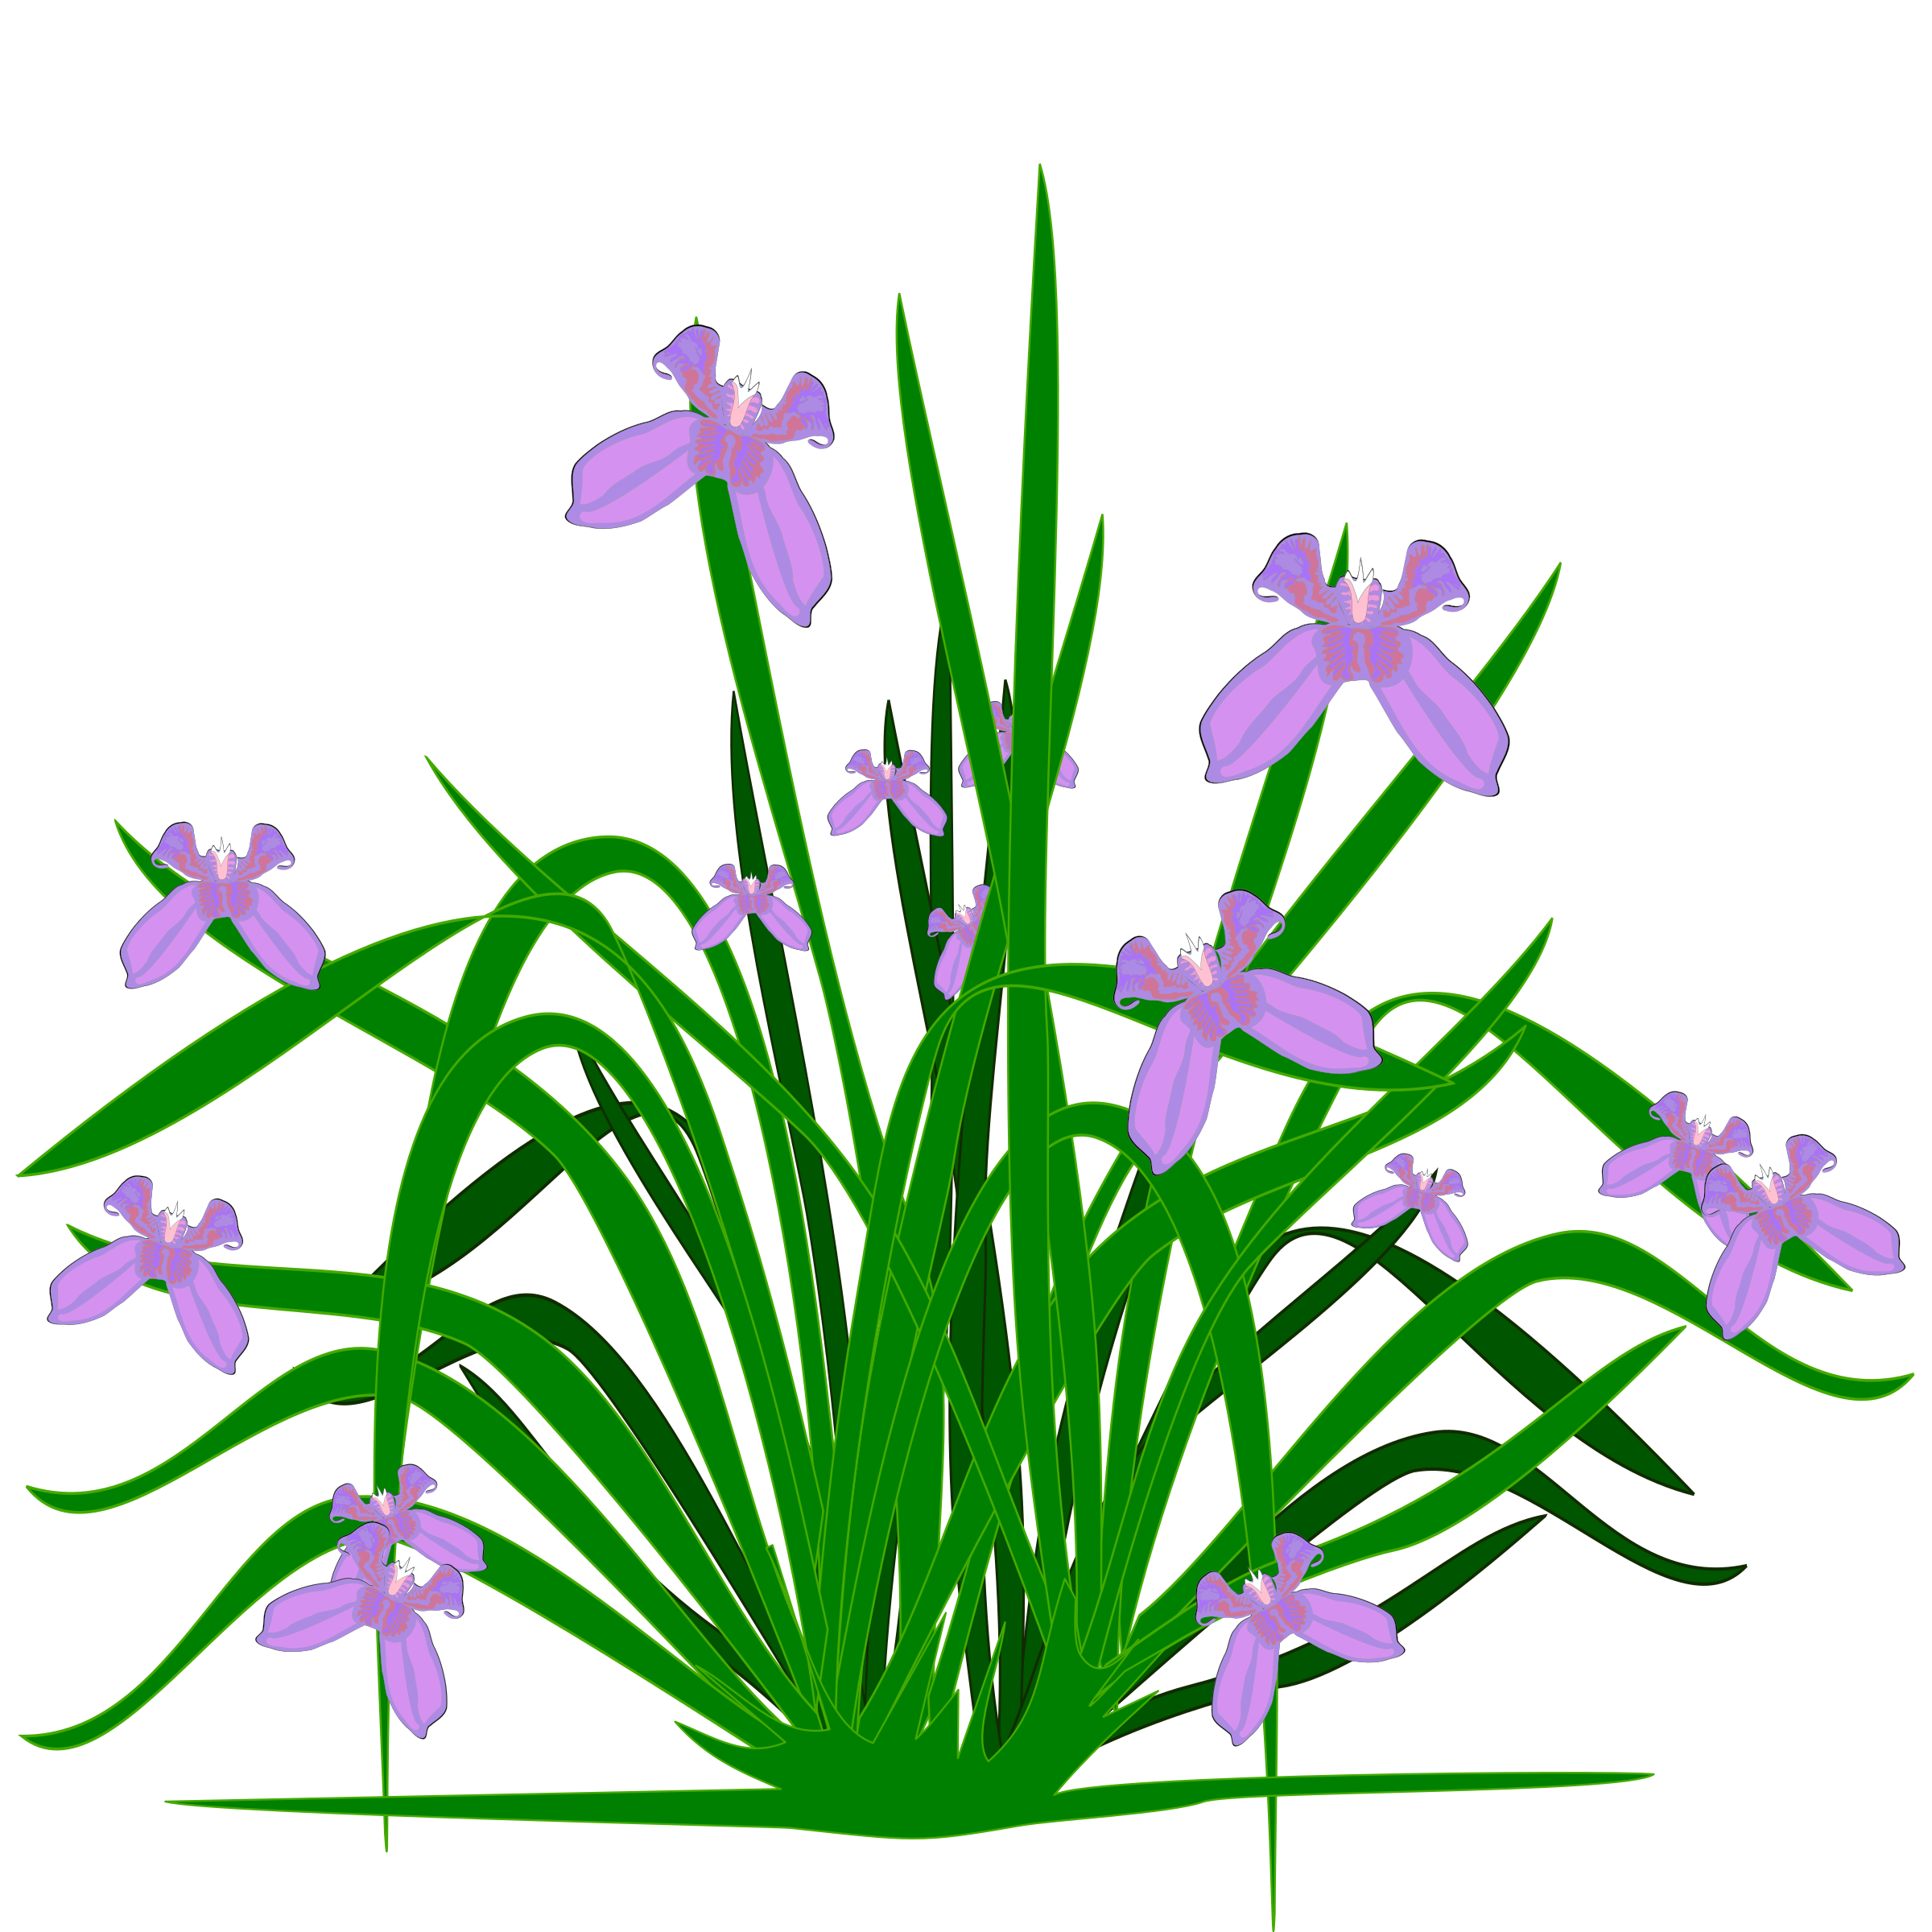 banner transparent download Violet clipart flower plant. Irises iris croatica clip